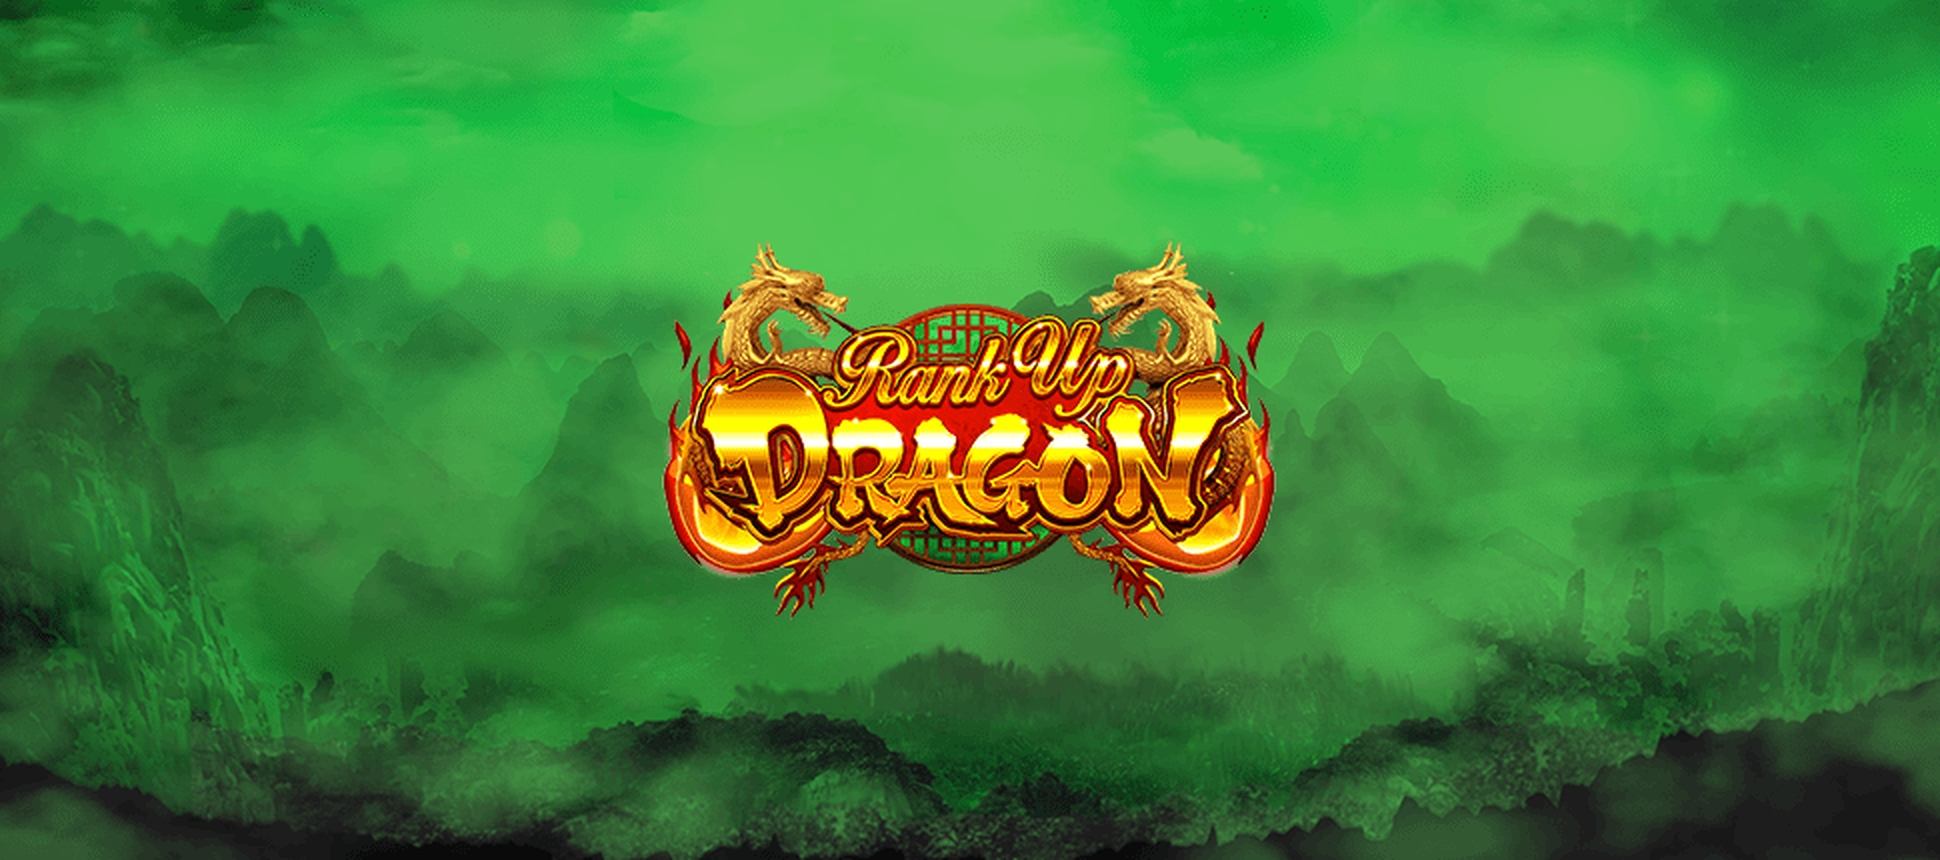 Se Rank Up Dragon Online Slot Demo Game, Rising Entertainment